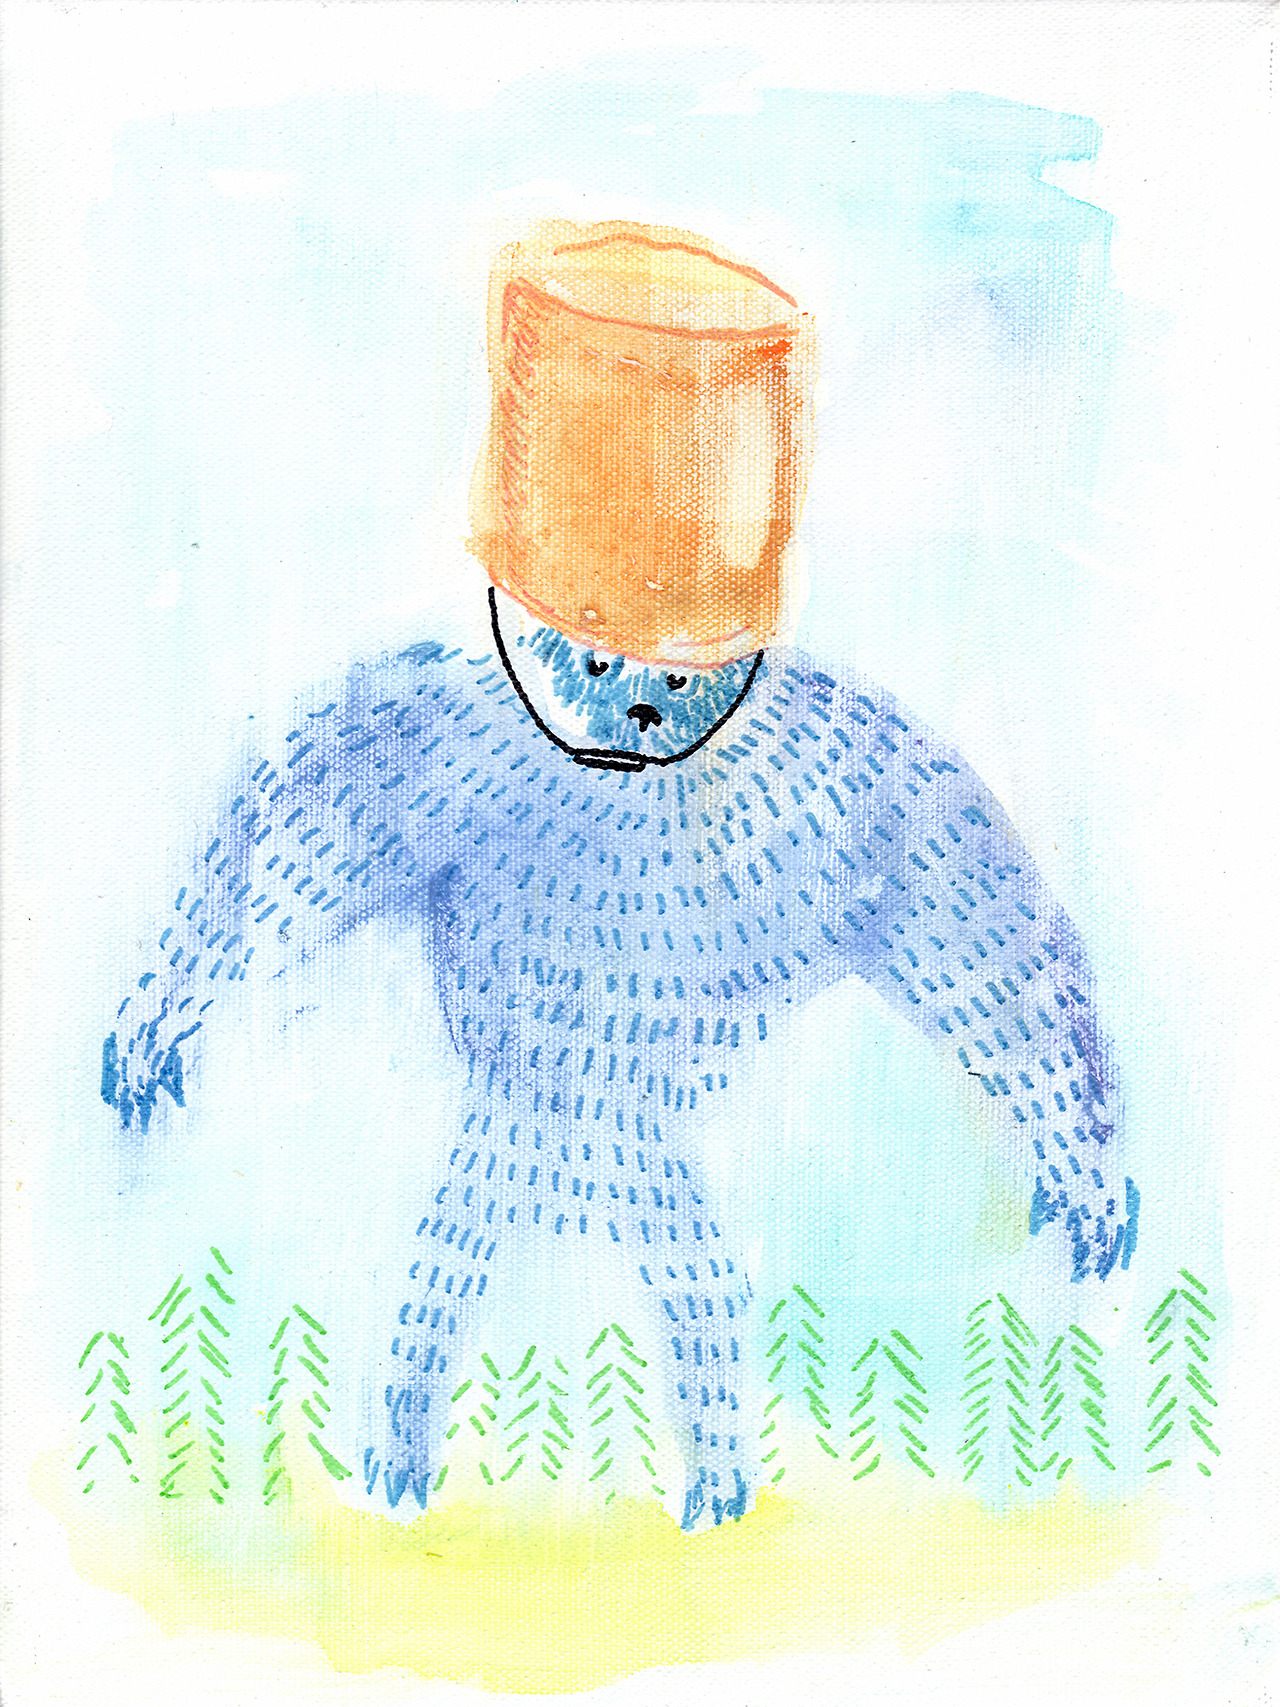 7/6/13 -  The Bucket Bear.    There was a dog at a dog park I used to frequent that would play with a five gallon bucket for hours on end. It was a strange mutt. This is not a picture of that dog.   Buy it here -  http://tayloriwnder.bigcartel.com    Prints here -  http://society6.com/taylorwinder